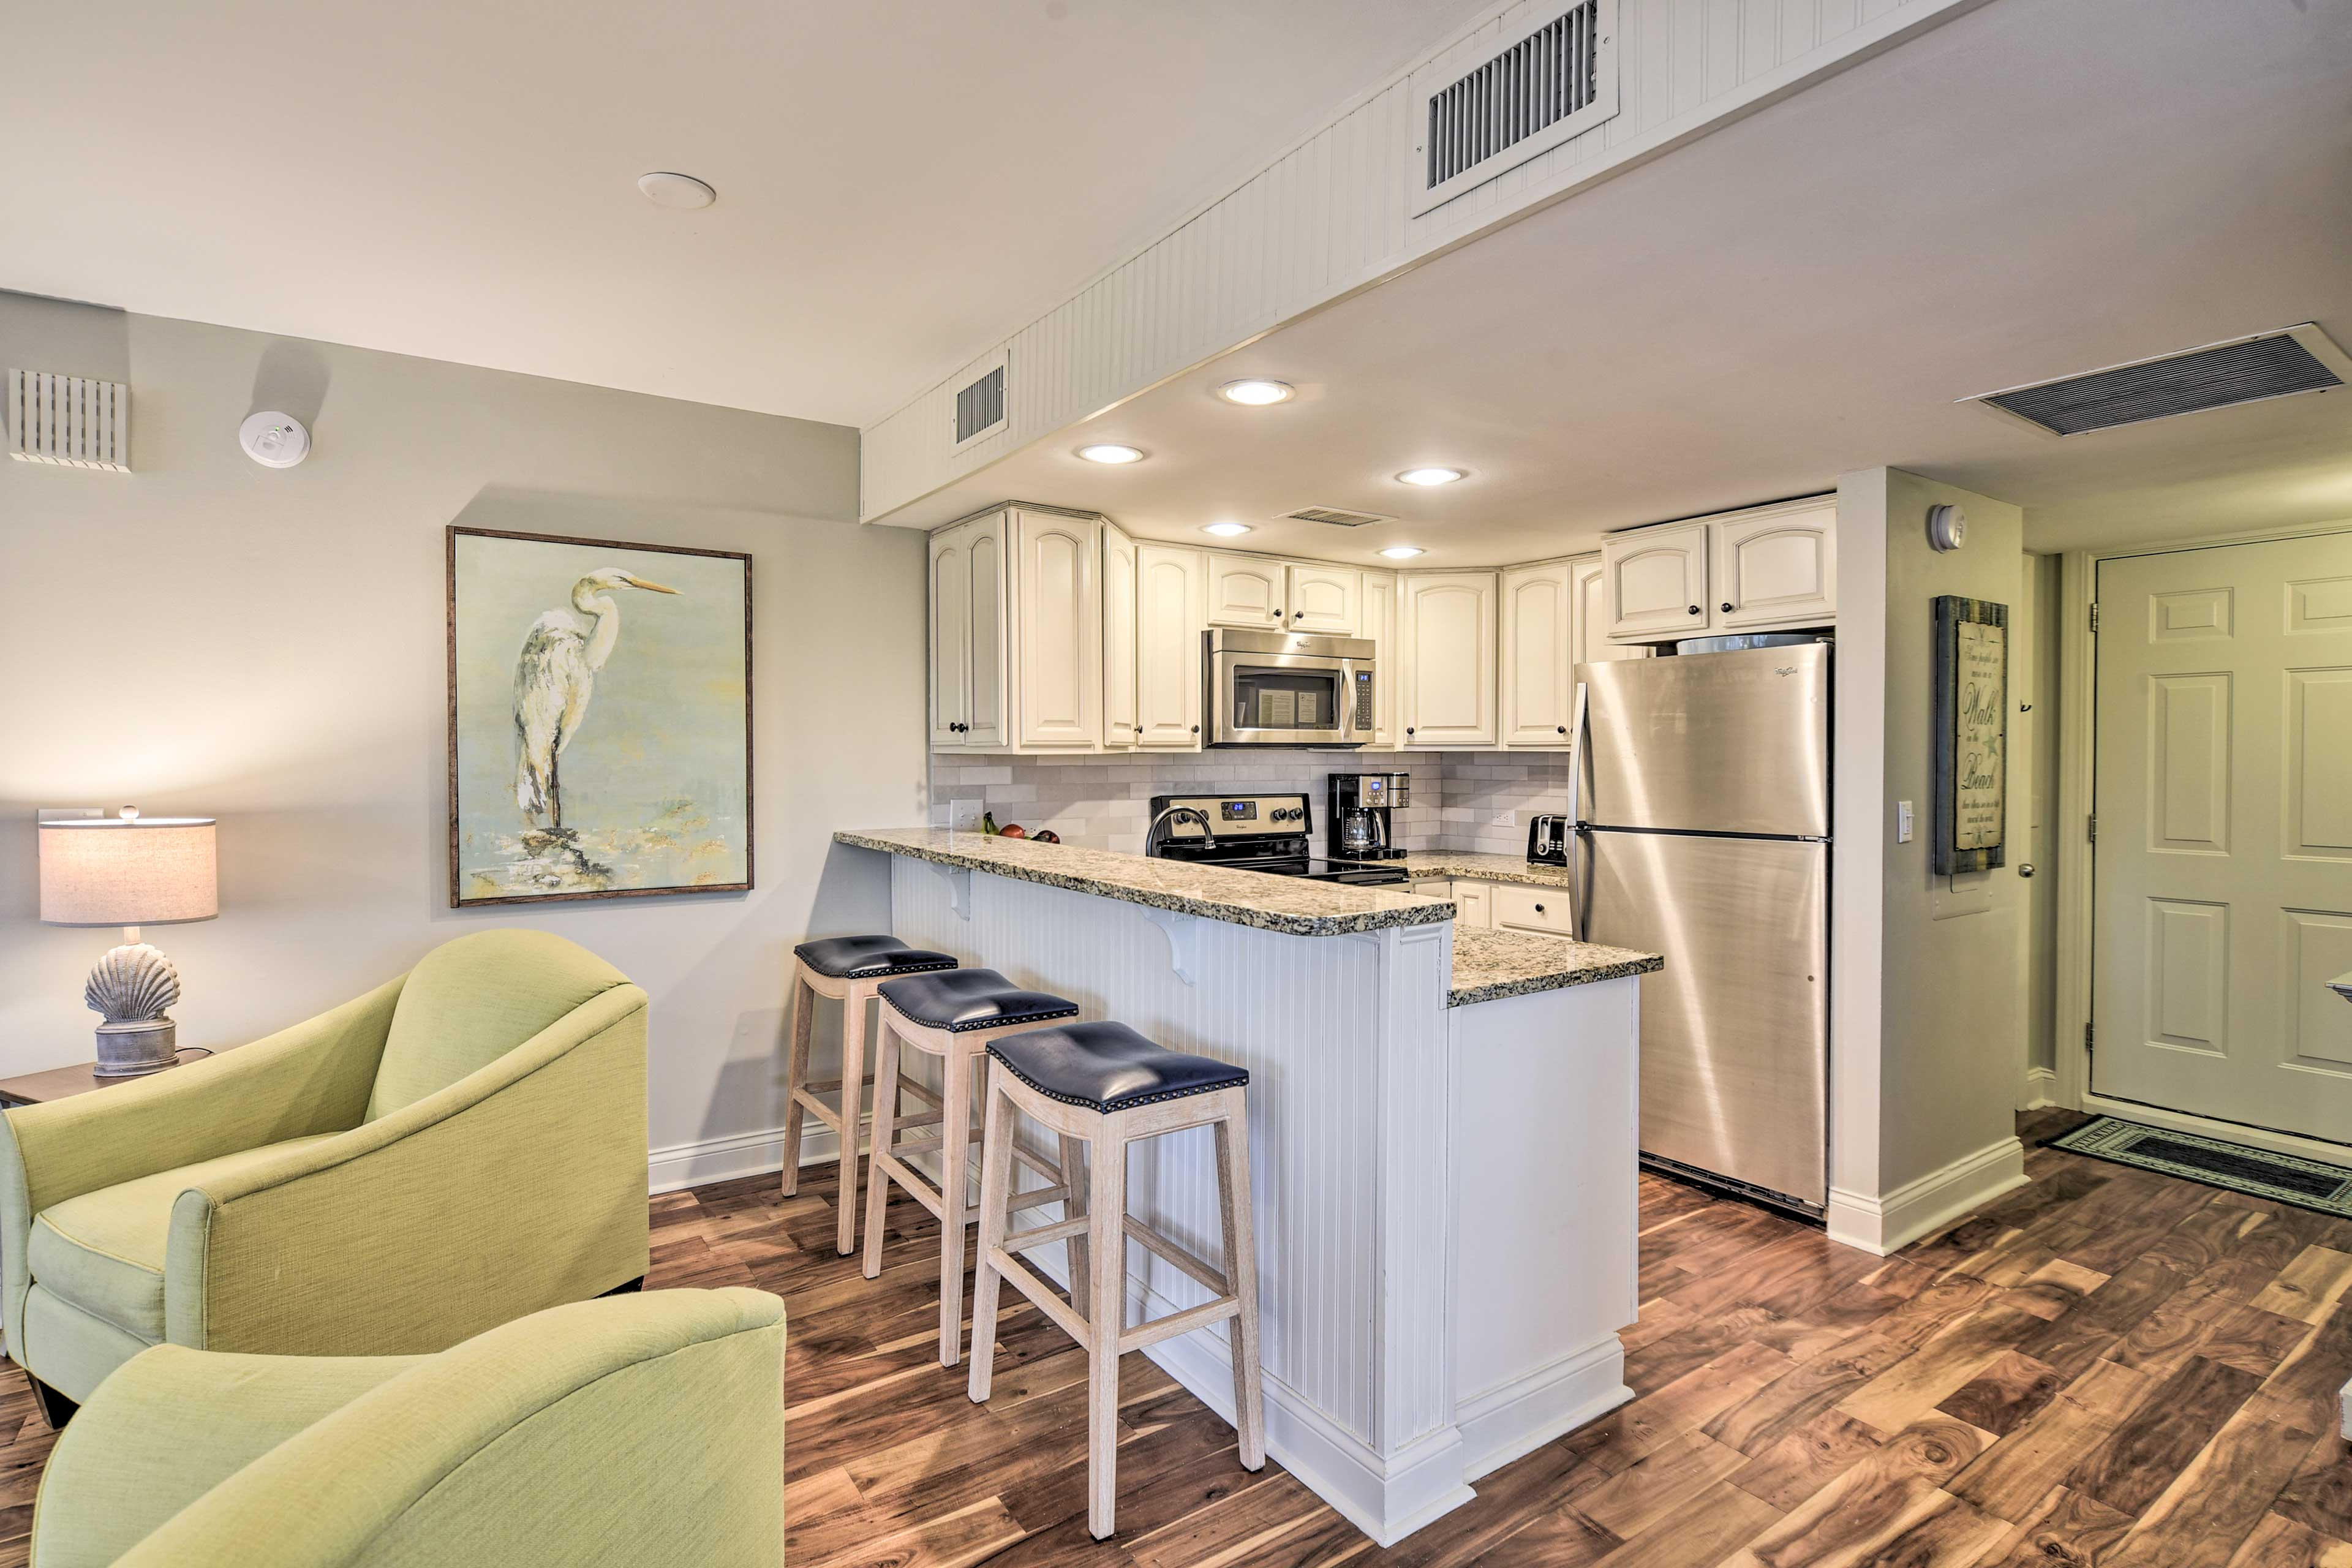 Kitchen | Fully Equipped | Granite Counters | Modern Appliances